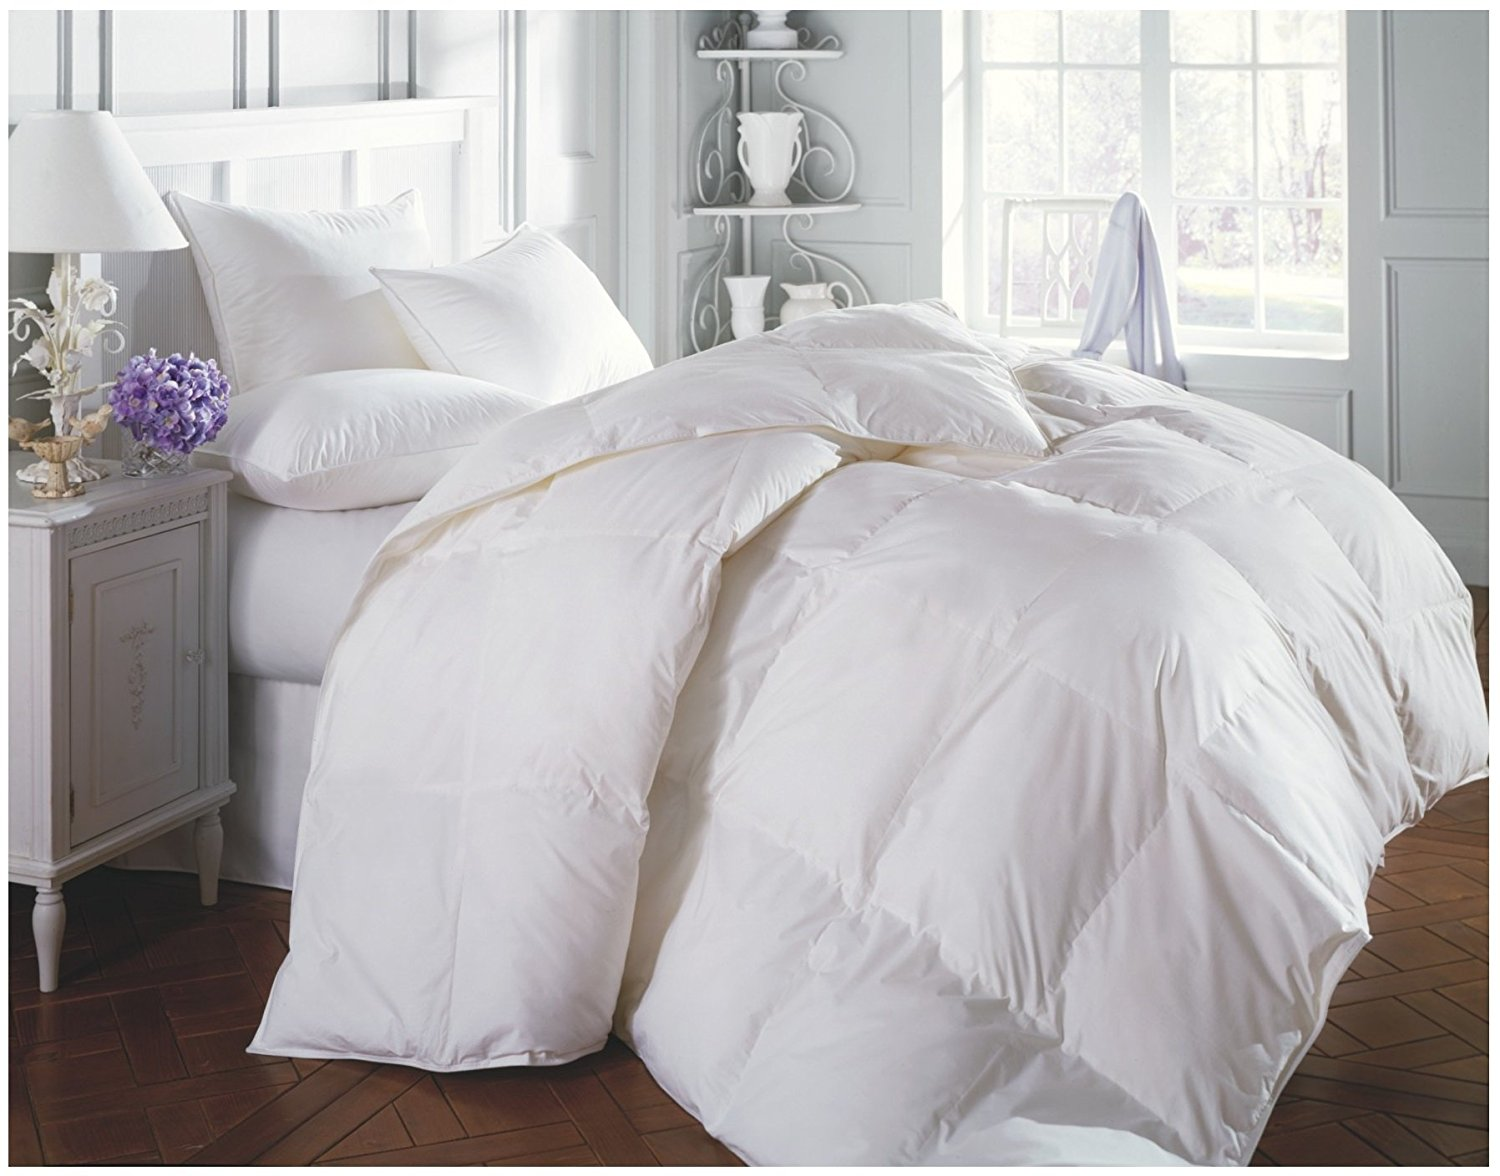 Superior Best Down Comforter Reviews by www.snoremagazine.com